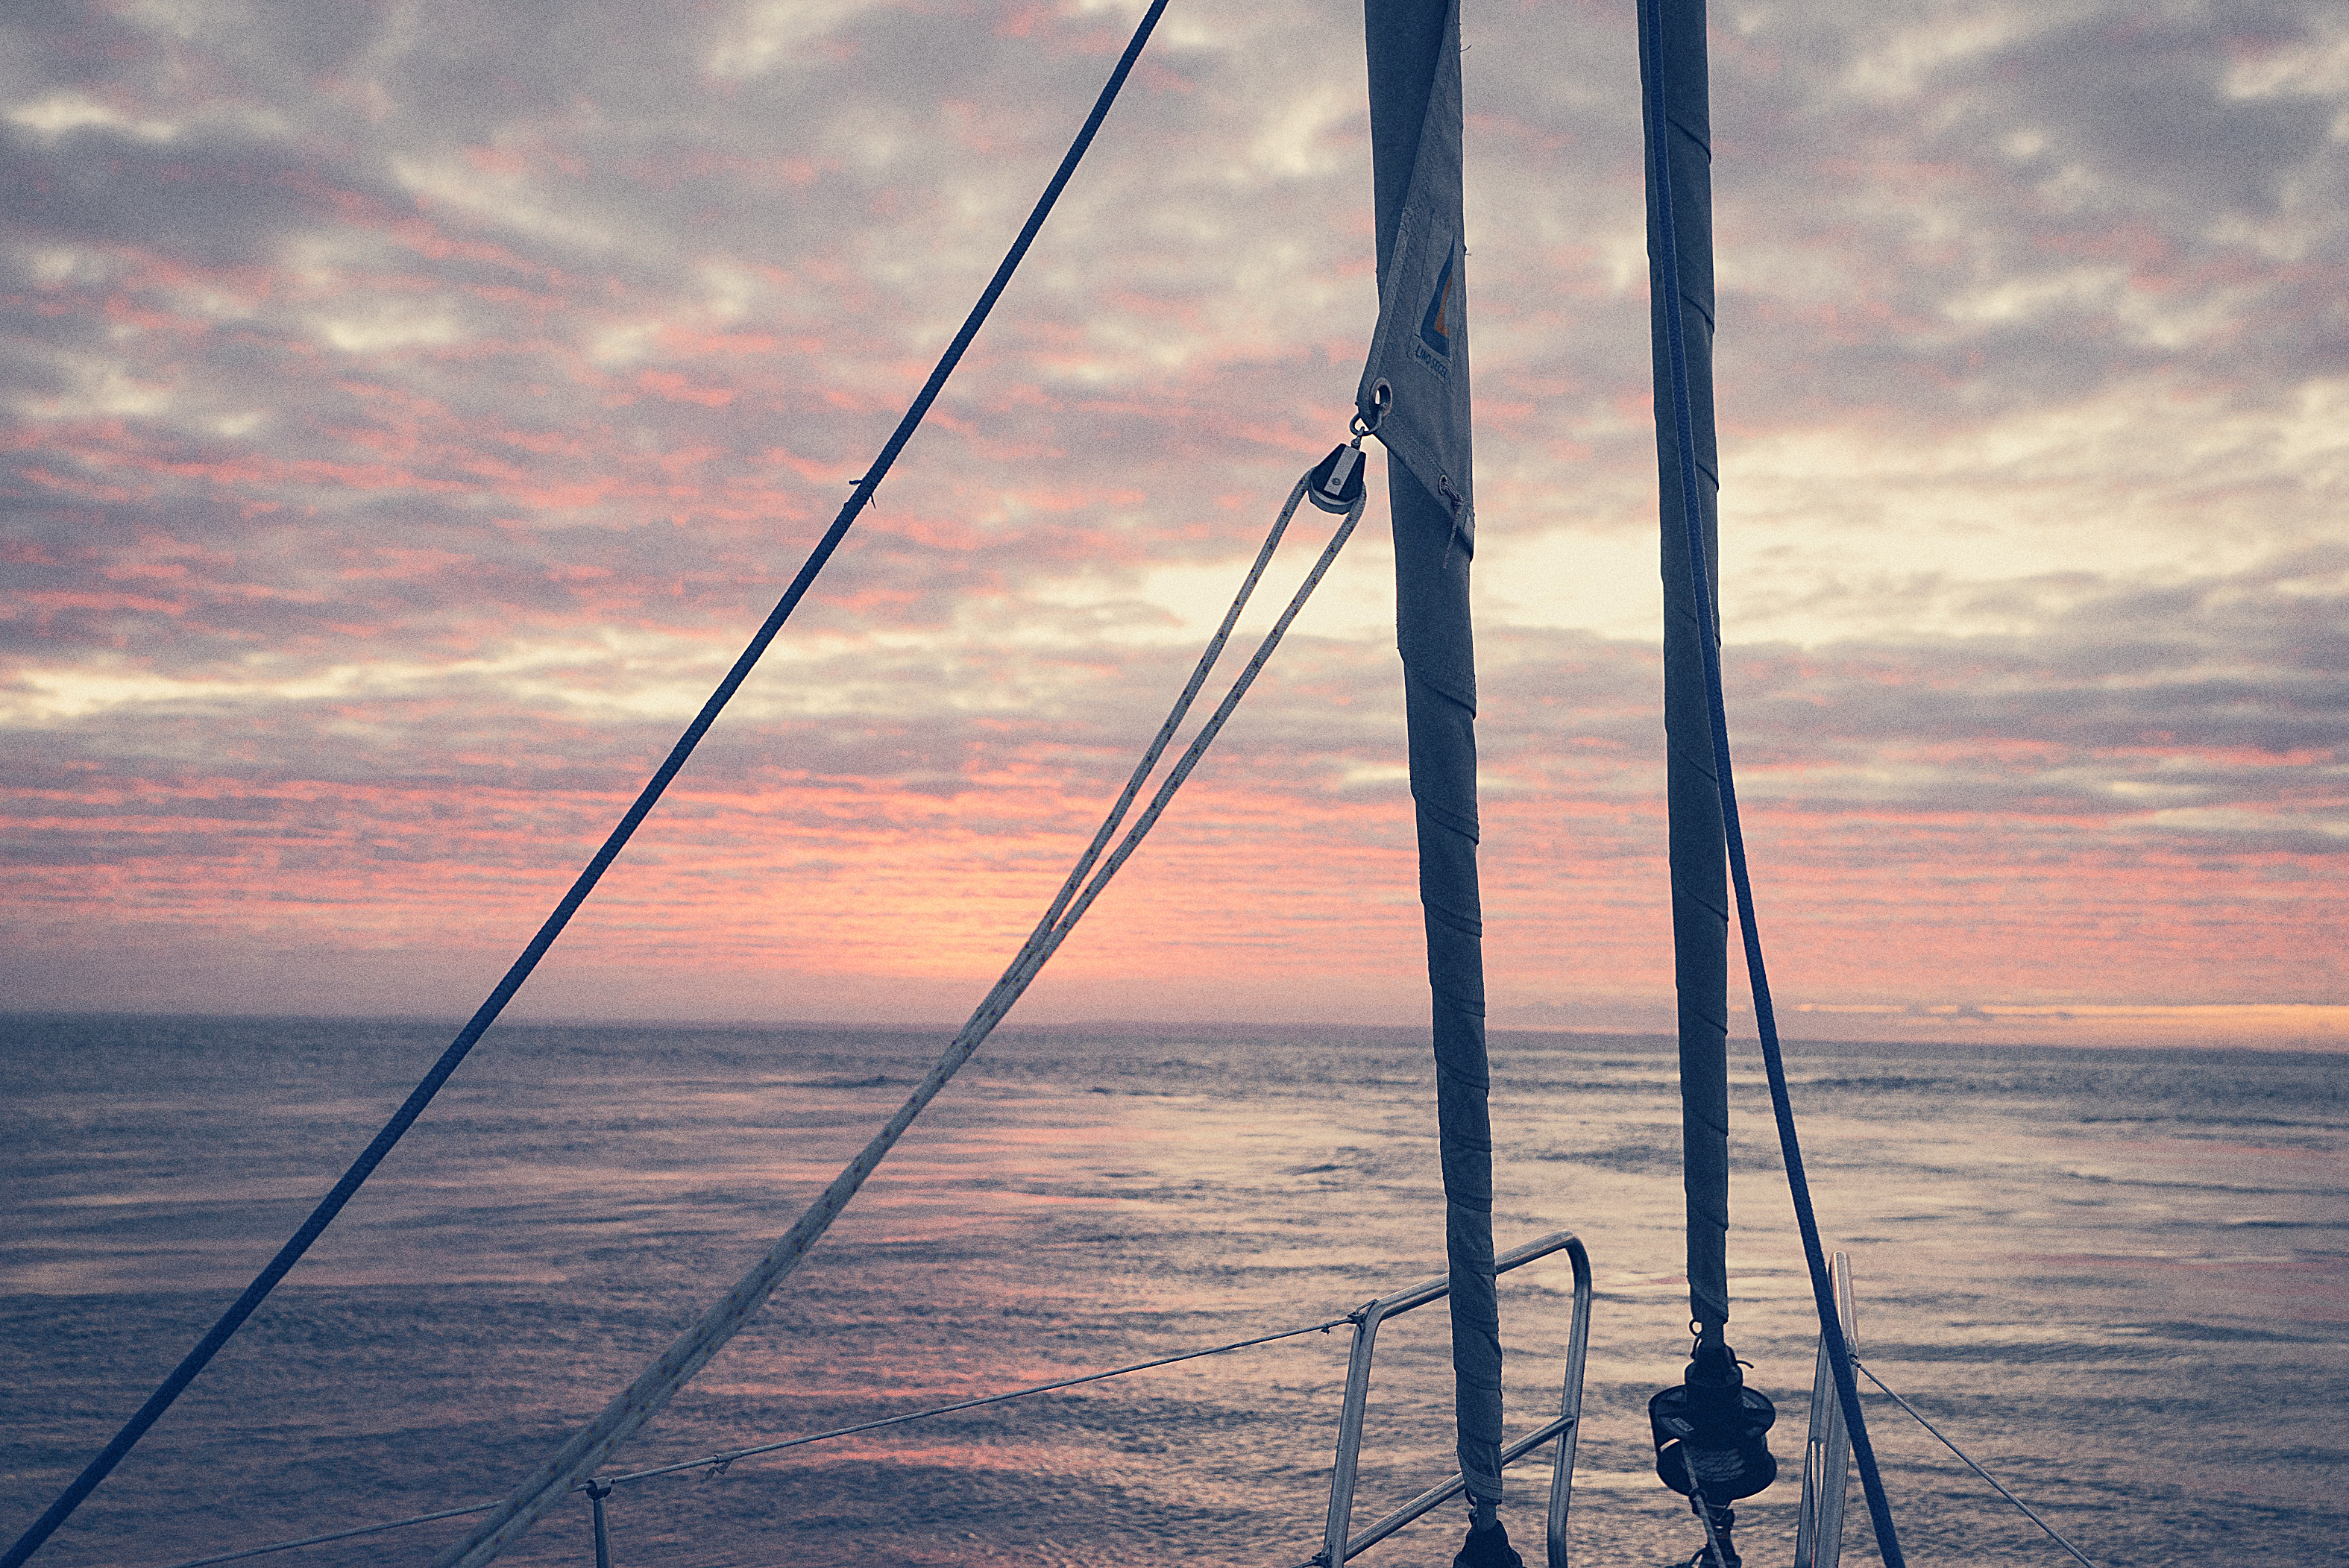 2,5 days sailing at the Bay of Biscay